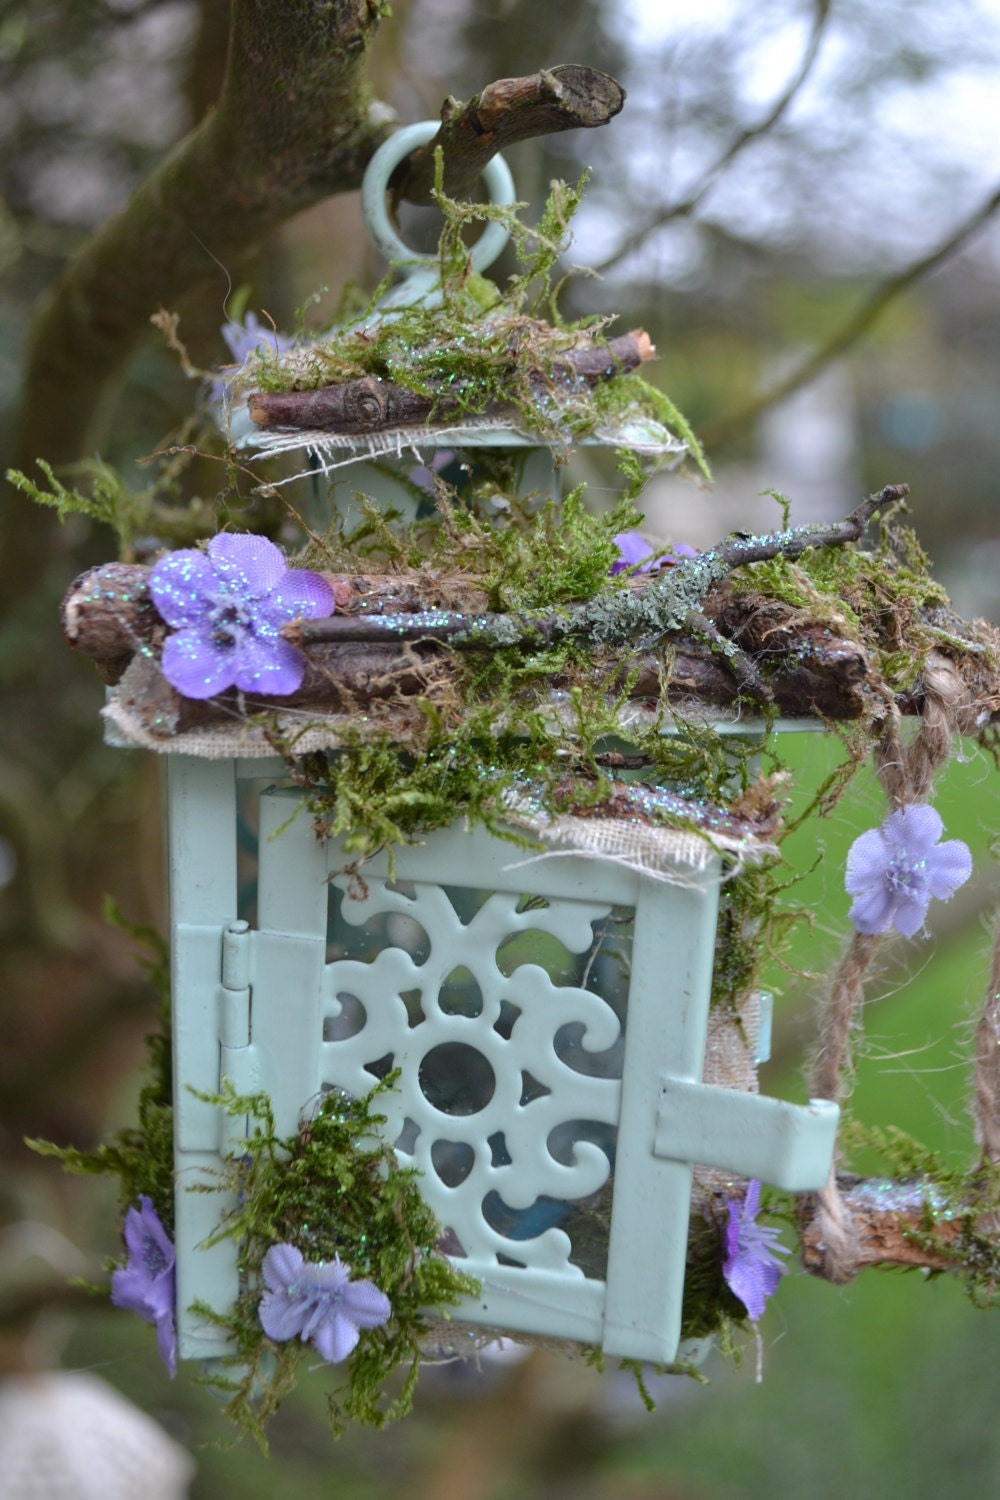 Fairy summer house fairie woodland tiny hideout with swing.